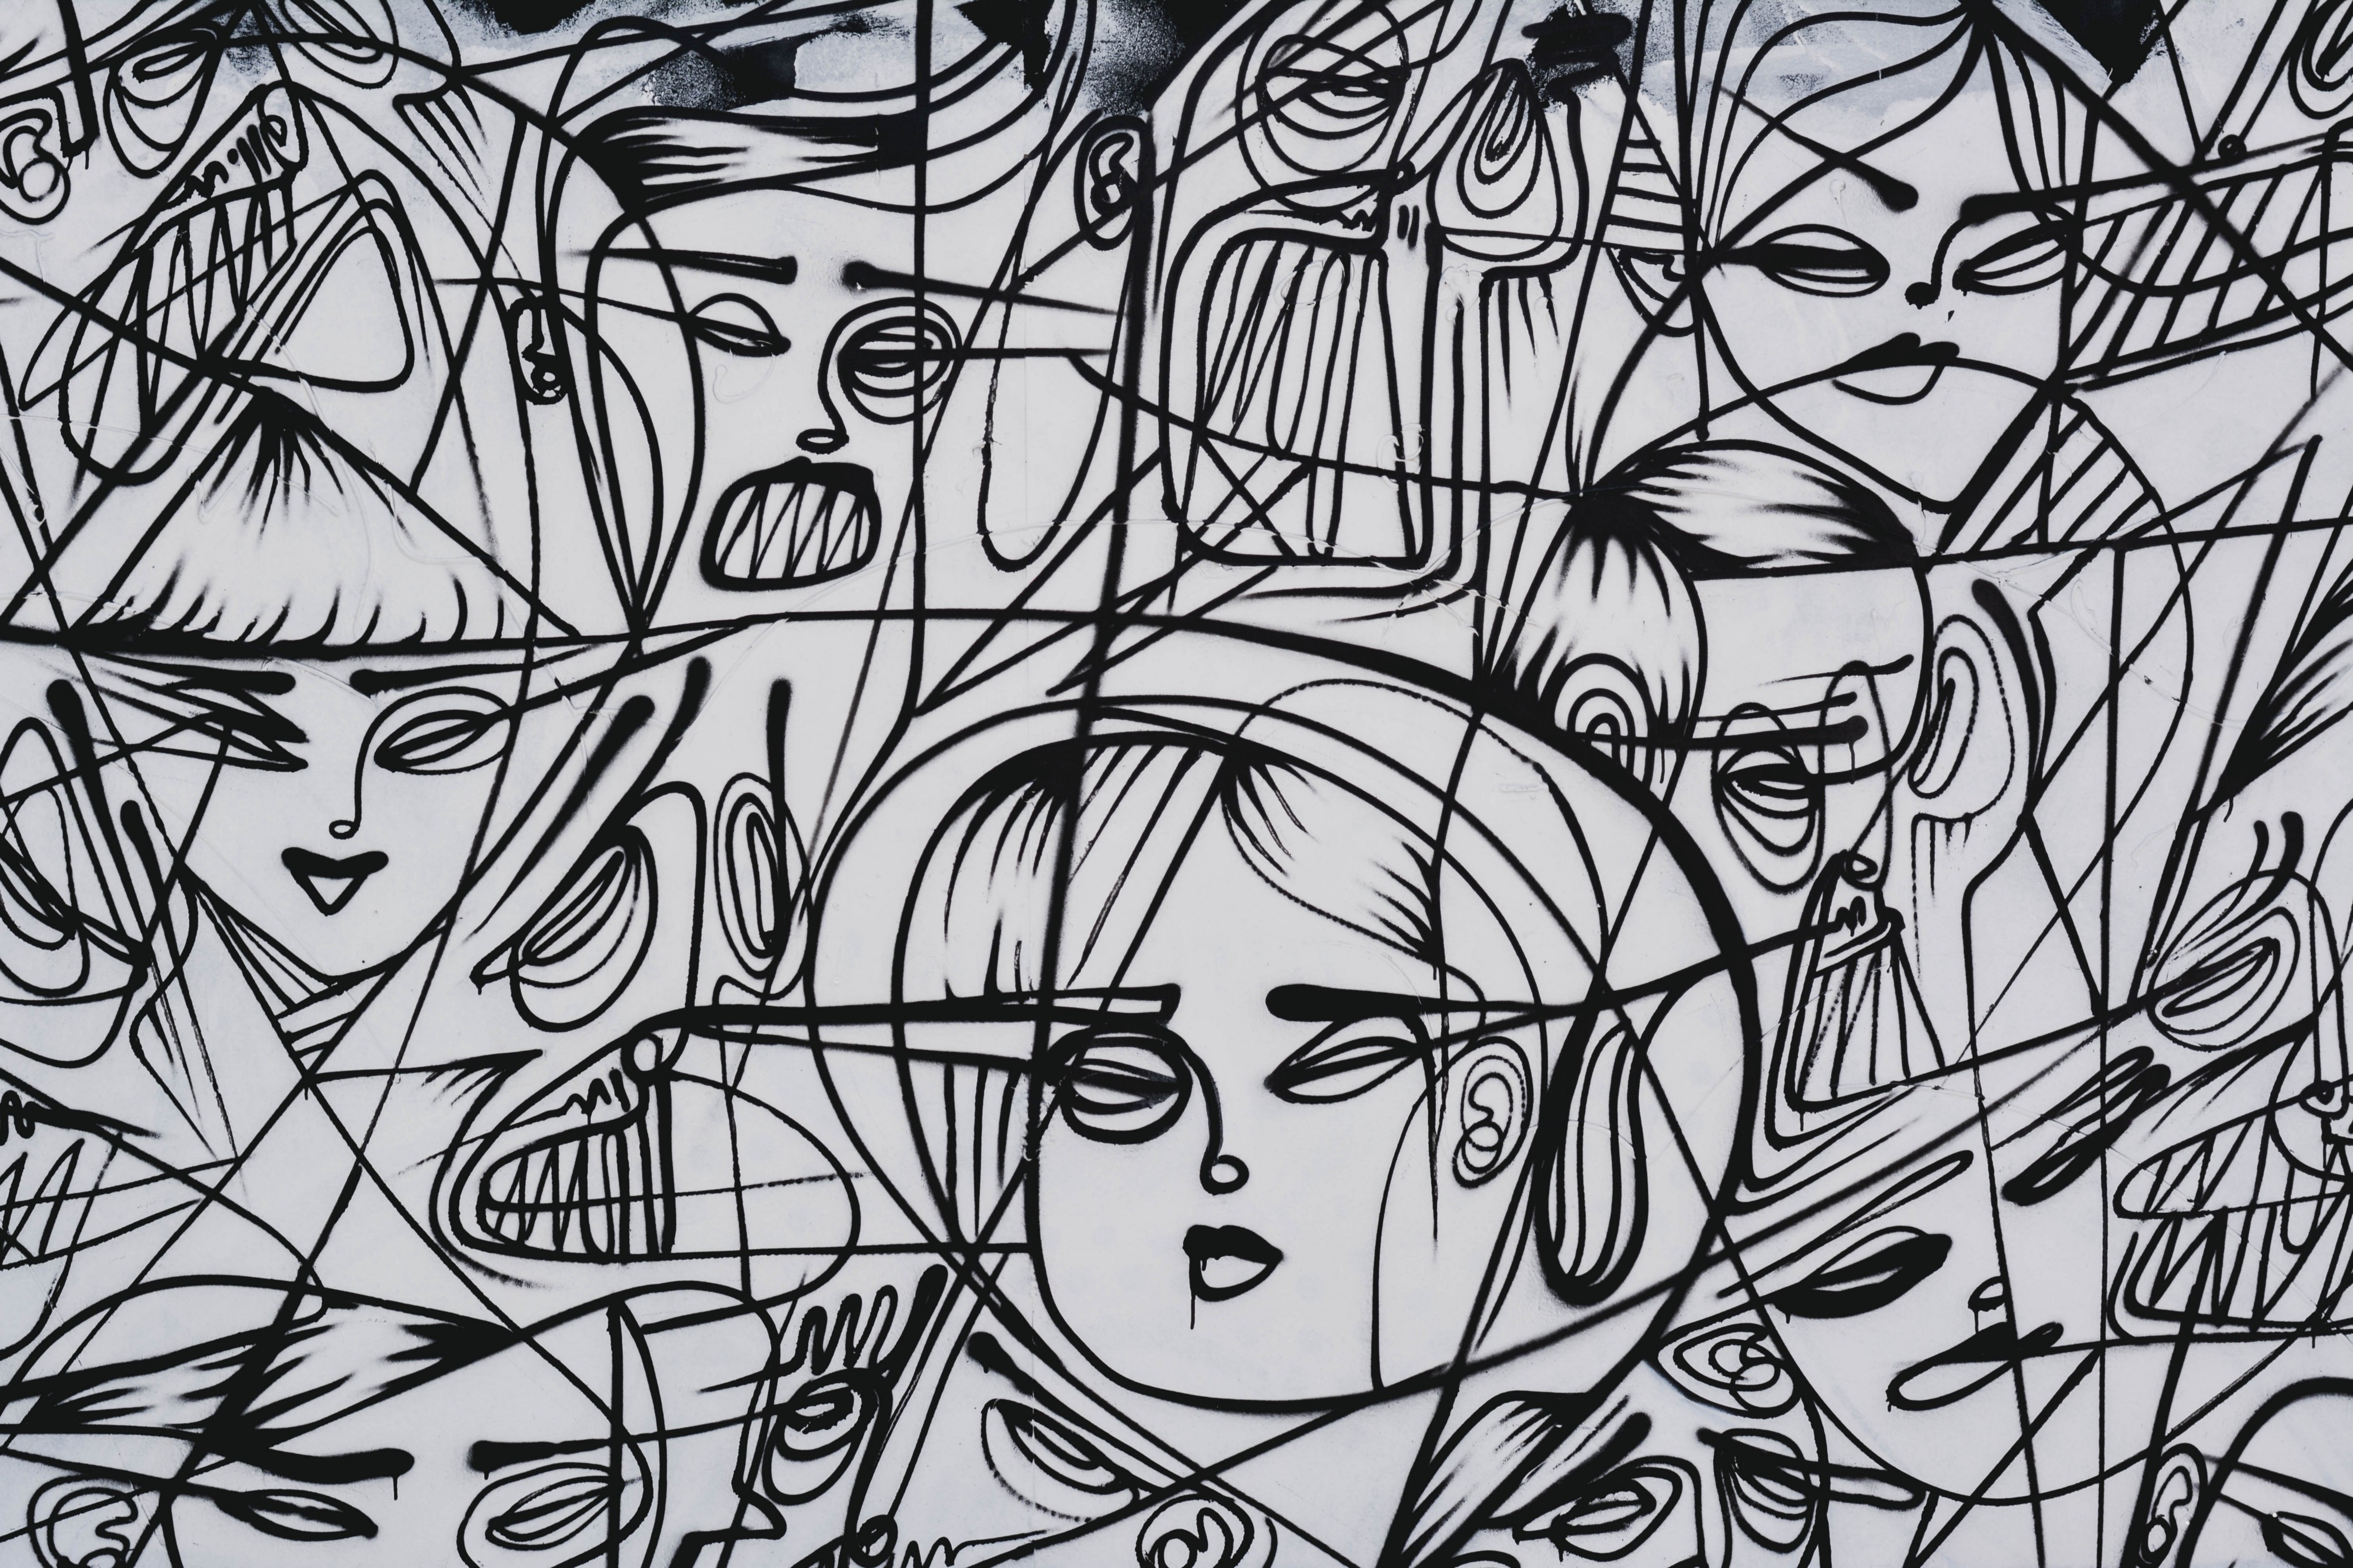 black and white drawing of human faces, connected and partially crossed out by black lines on a white background